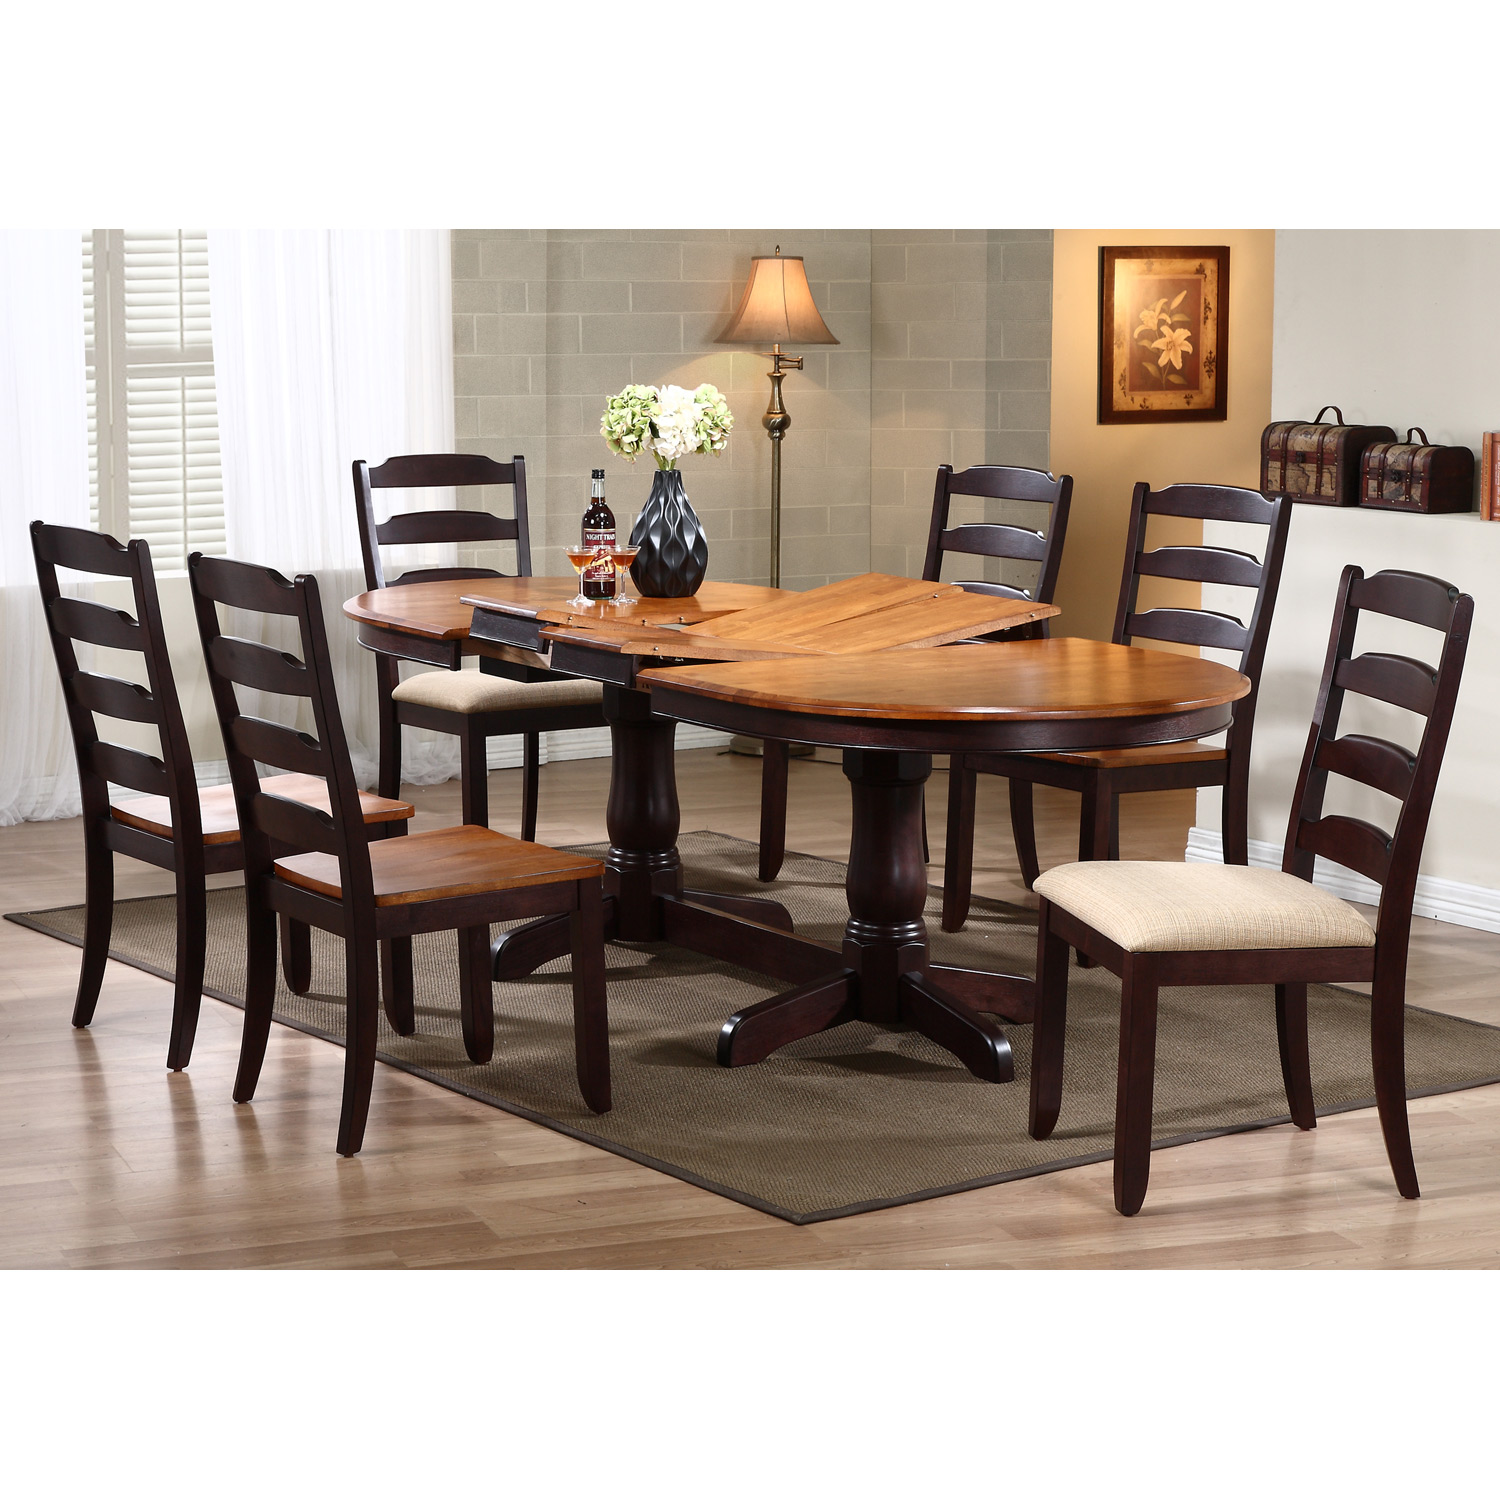 Merveilleux Gatsby 7 Piece Oval Extending Dining Set   Ladder Back Chairs, Mocha    ICON  ...